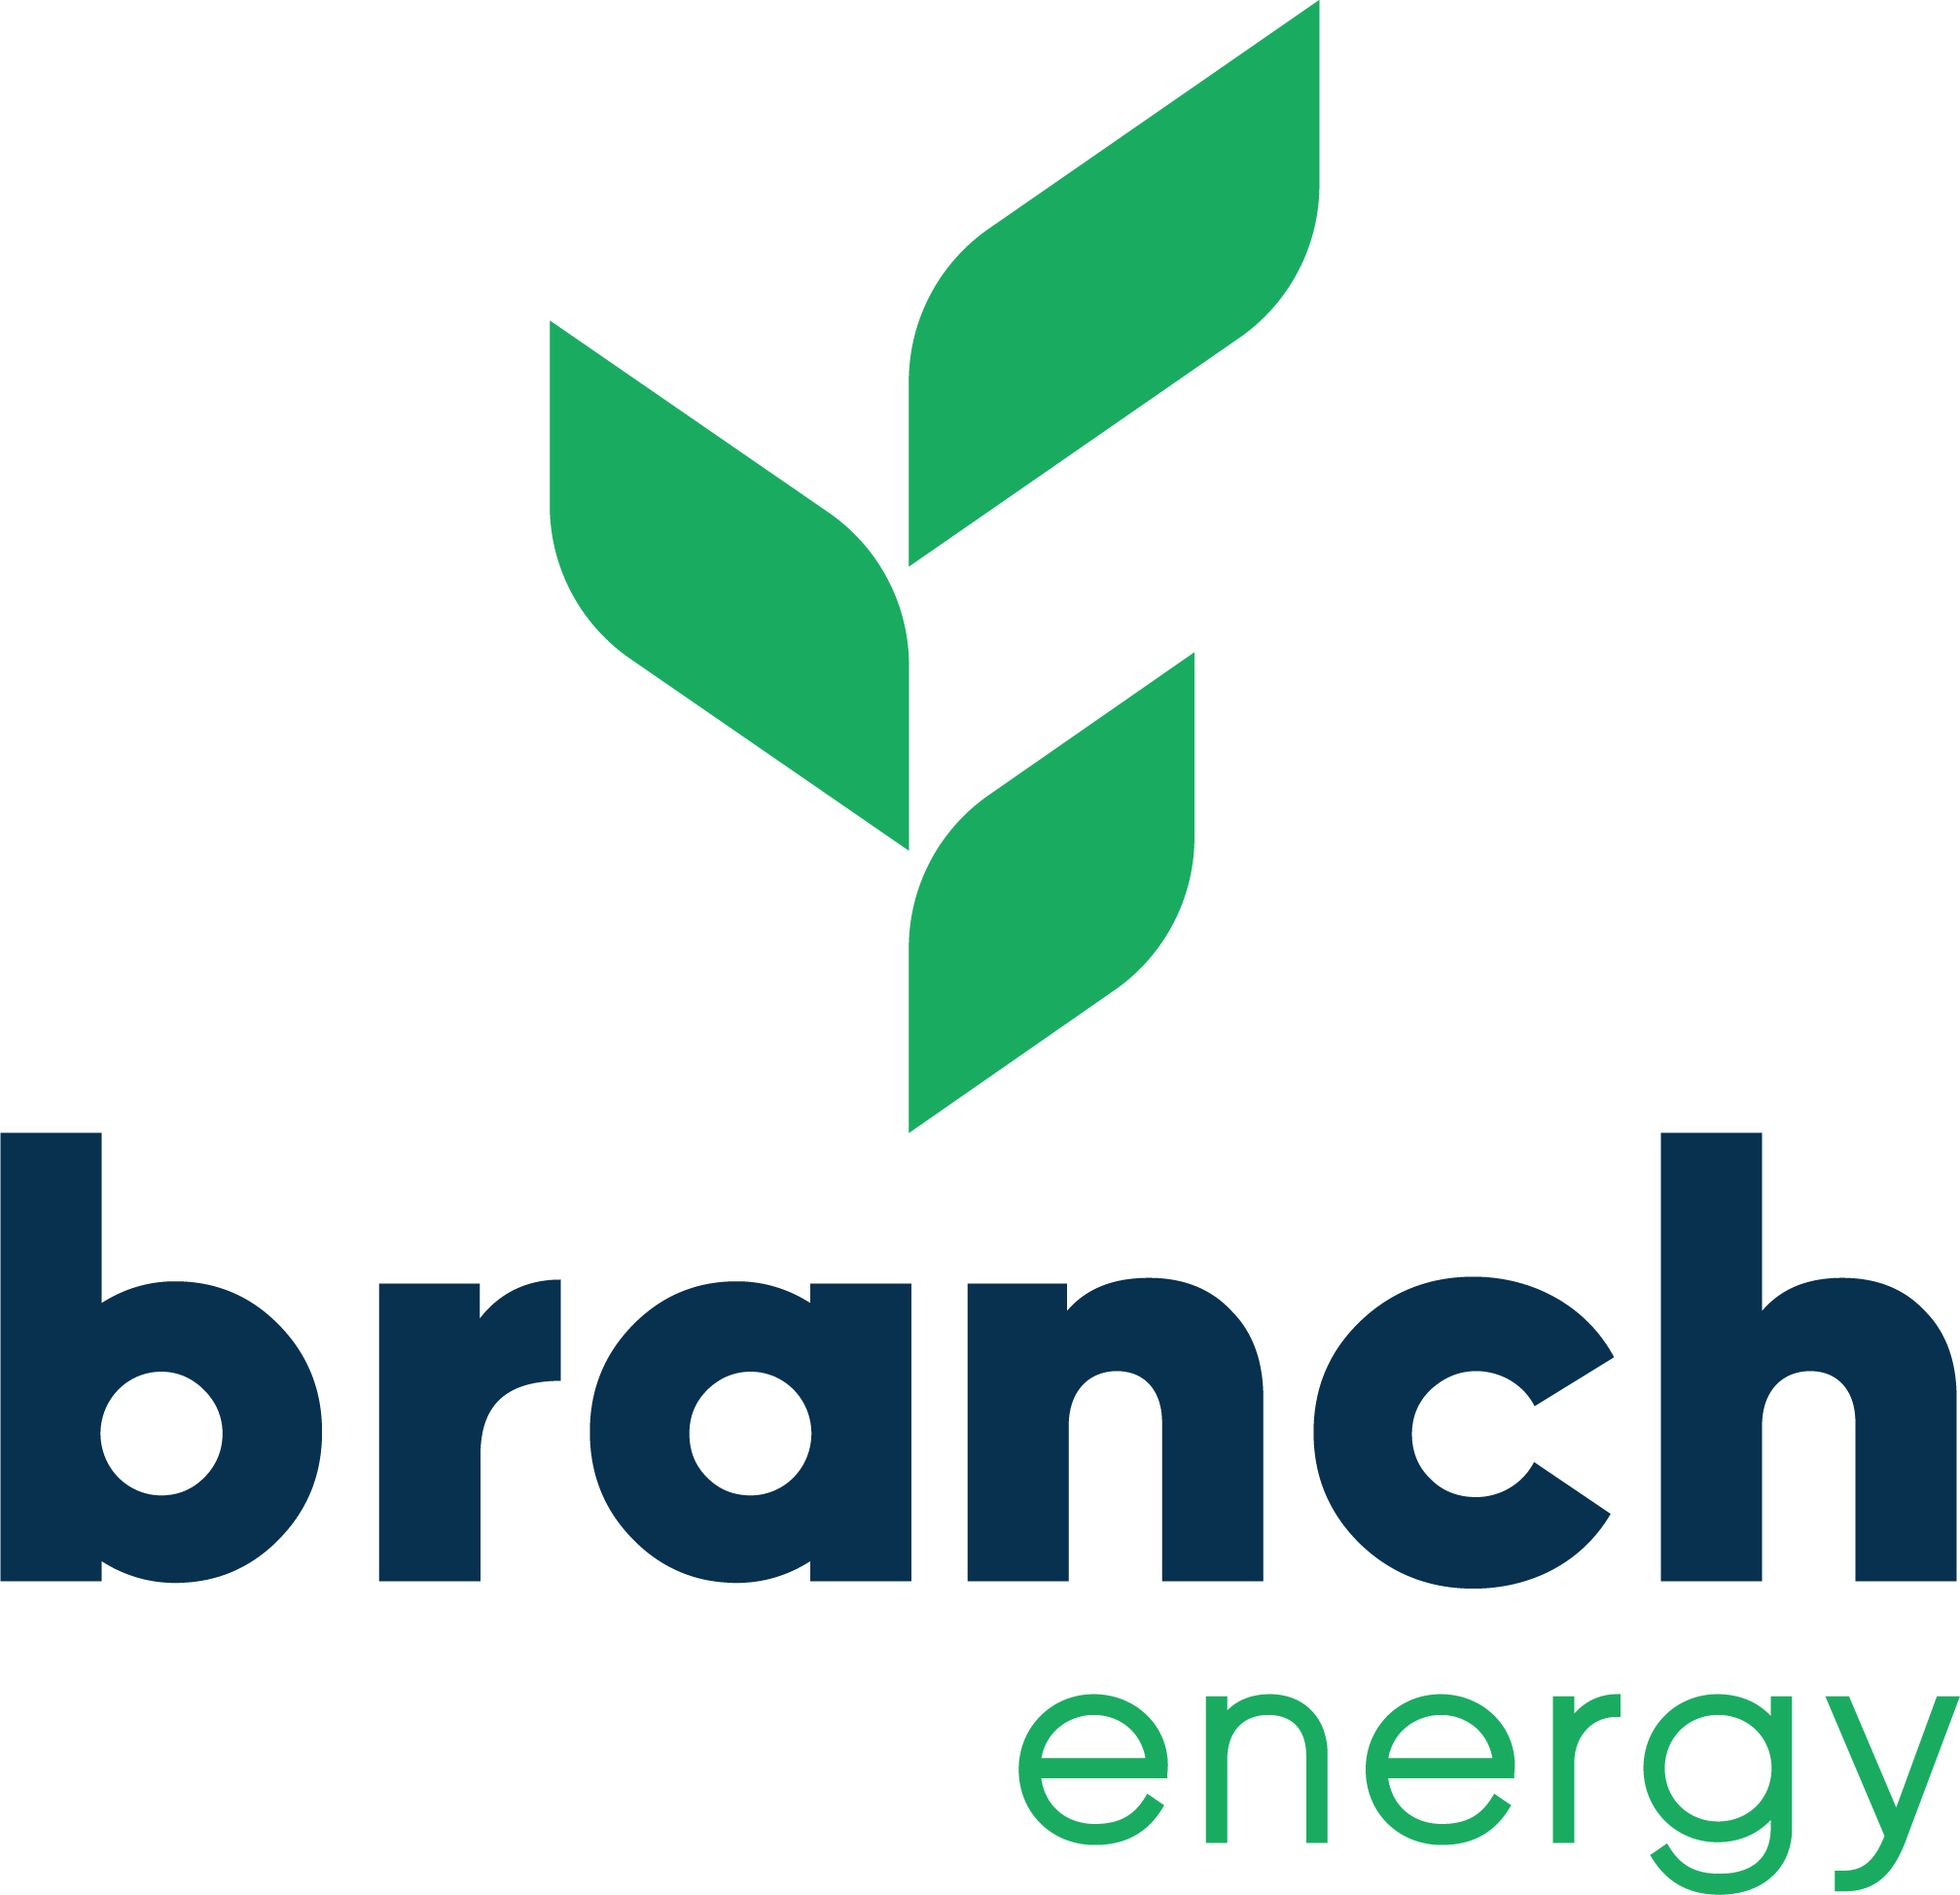 Searching for a beautiful new logo for a renewable energy company